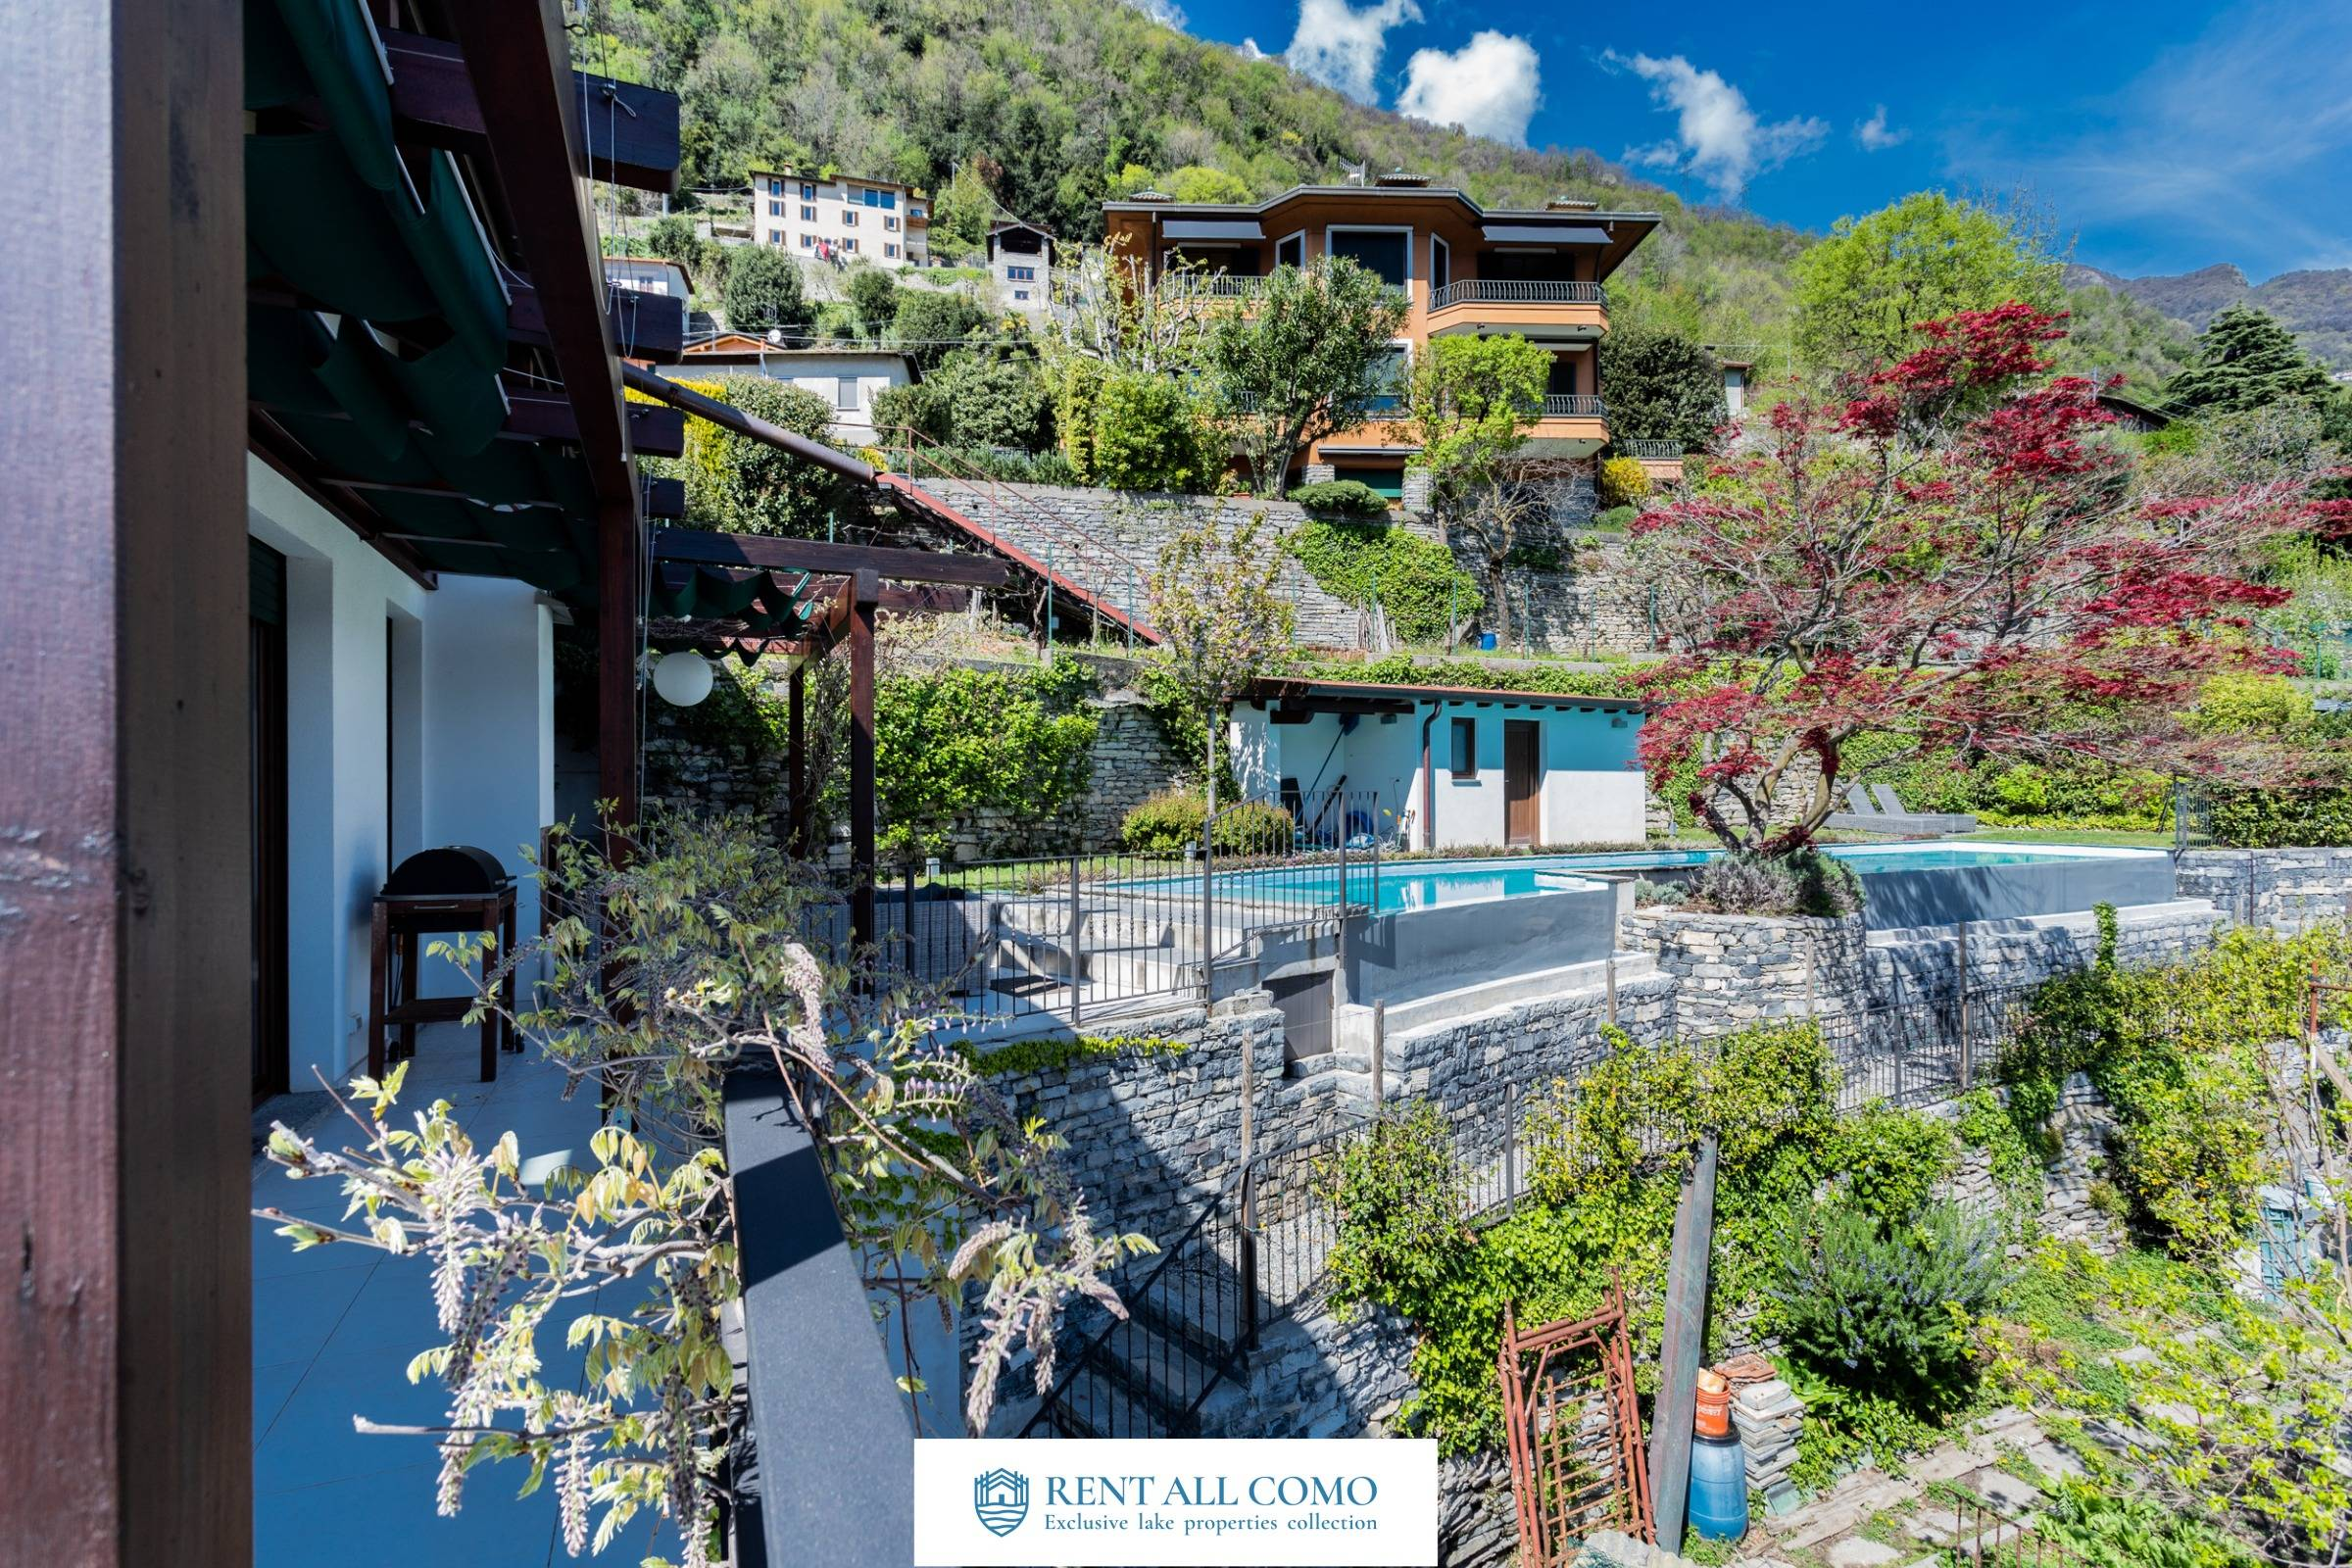 rent-all-como_villa-relax-with-infinity-pool